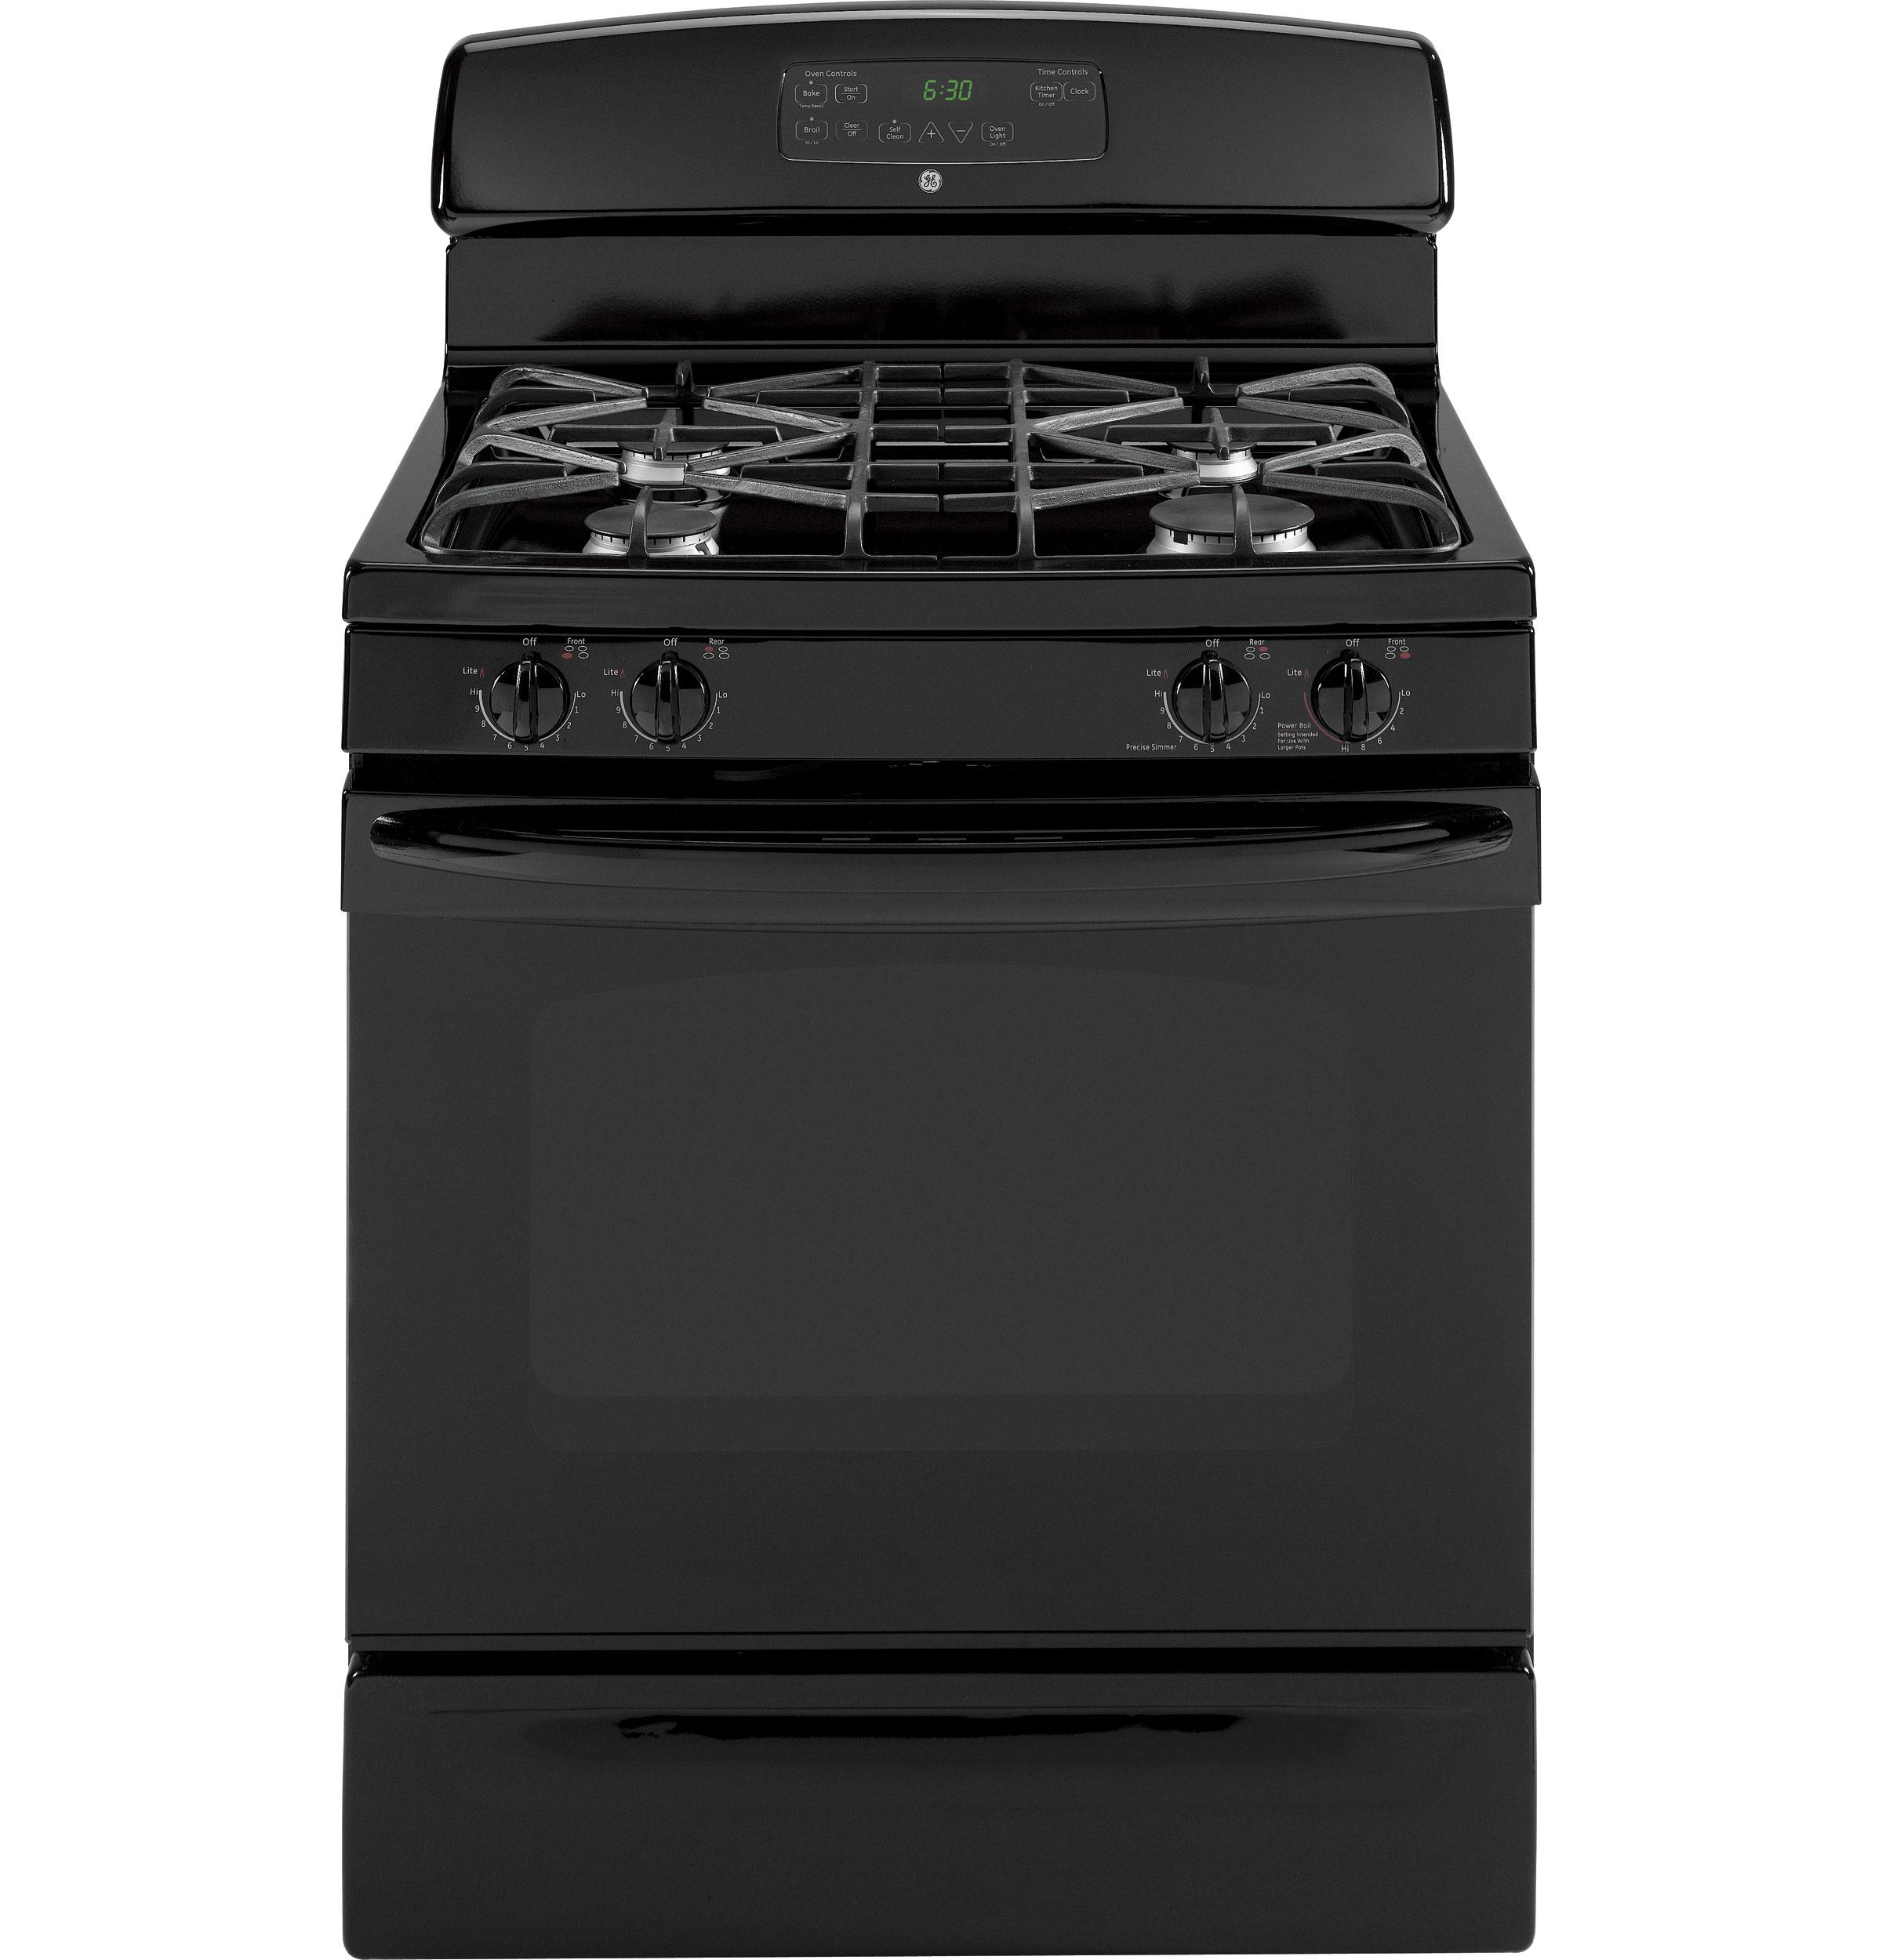 General Electric Stoves ~ Jgb erss general electric gas ranges